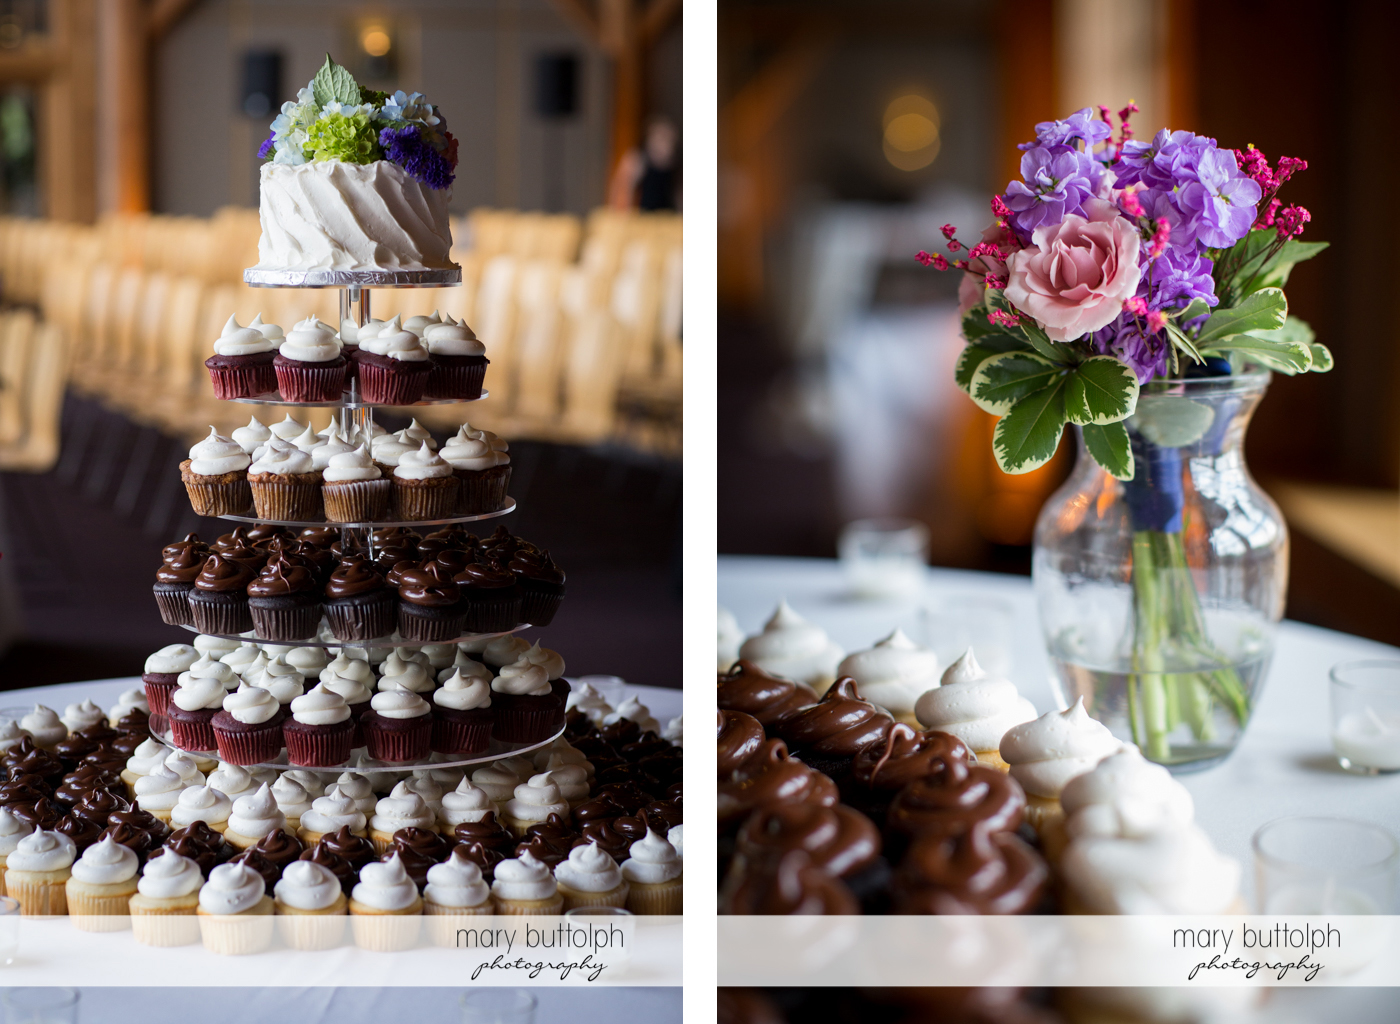 Couple's wedding cake is surrounded by cupcakes and decorated with flowers at the Lodge at Welch Allyn Wedding